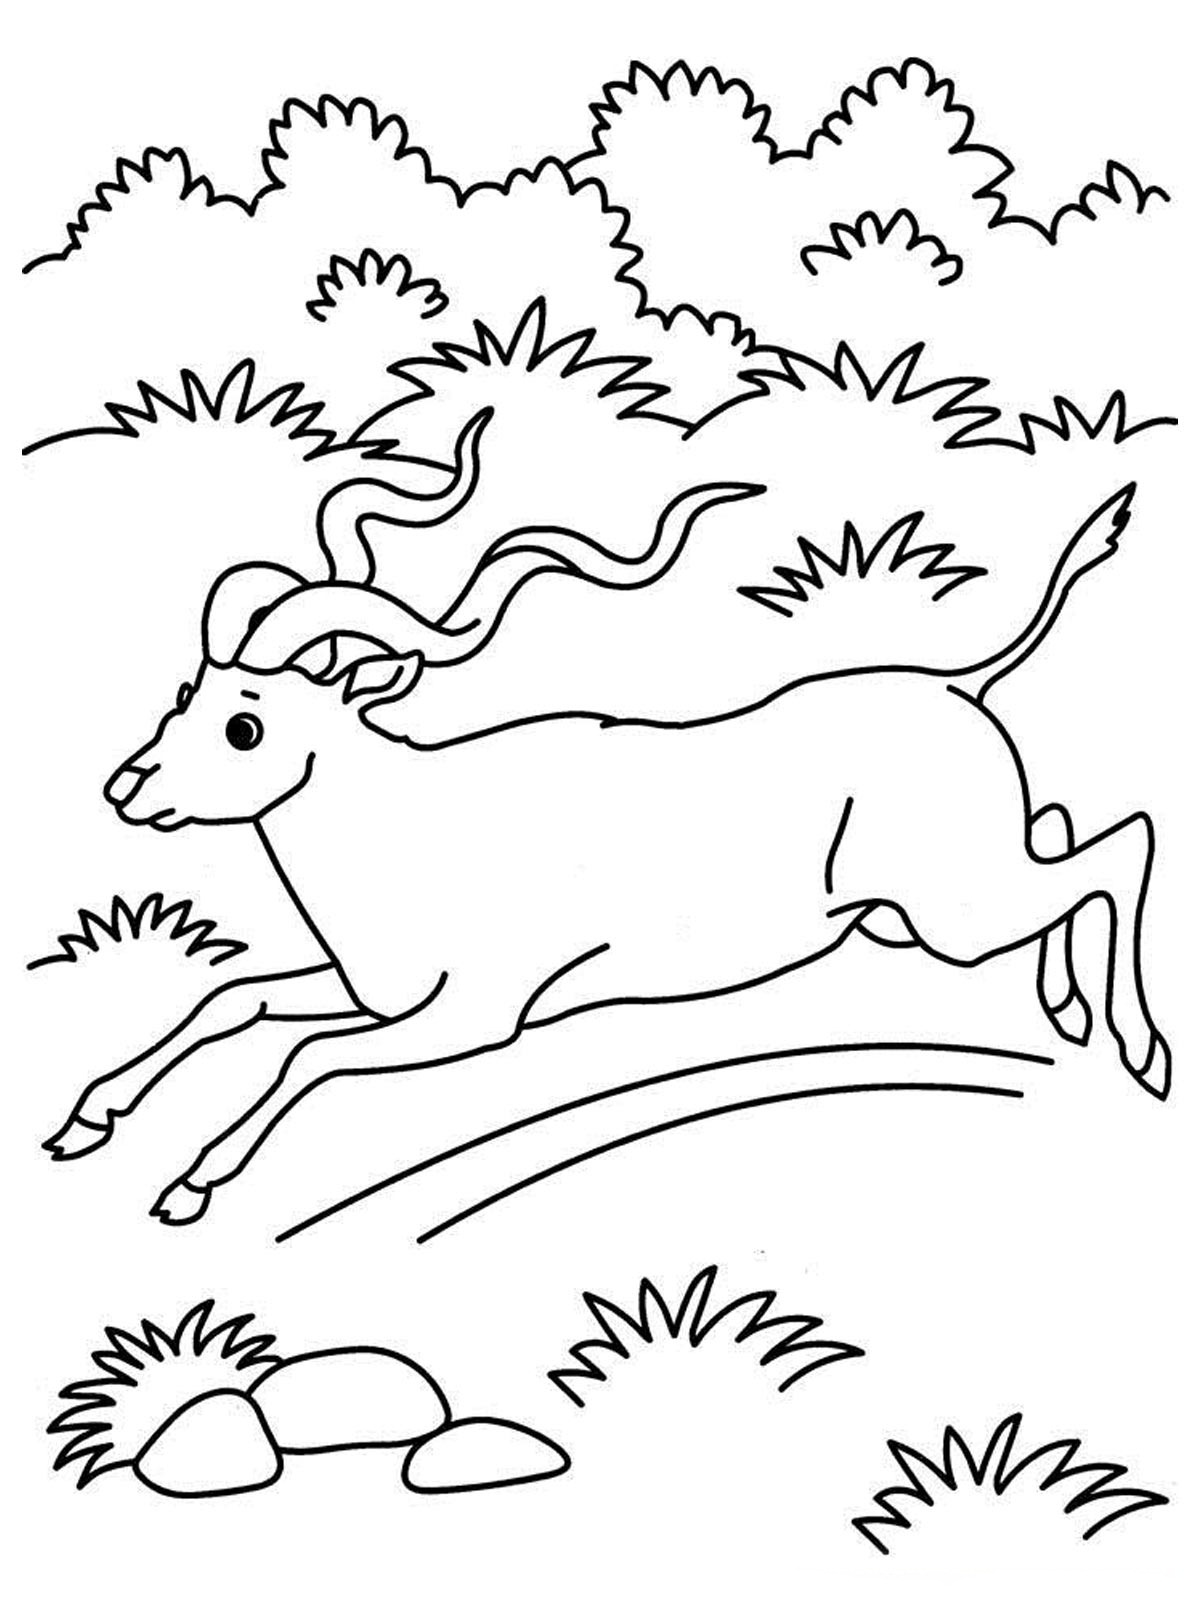 free coloring pages of realistic animals free realistic owl online coloring page for adults of coloring free animals realistic pages